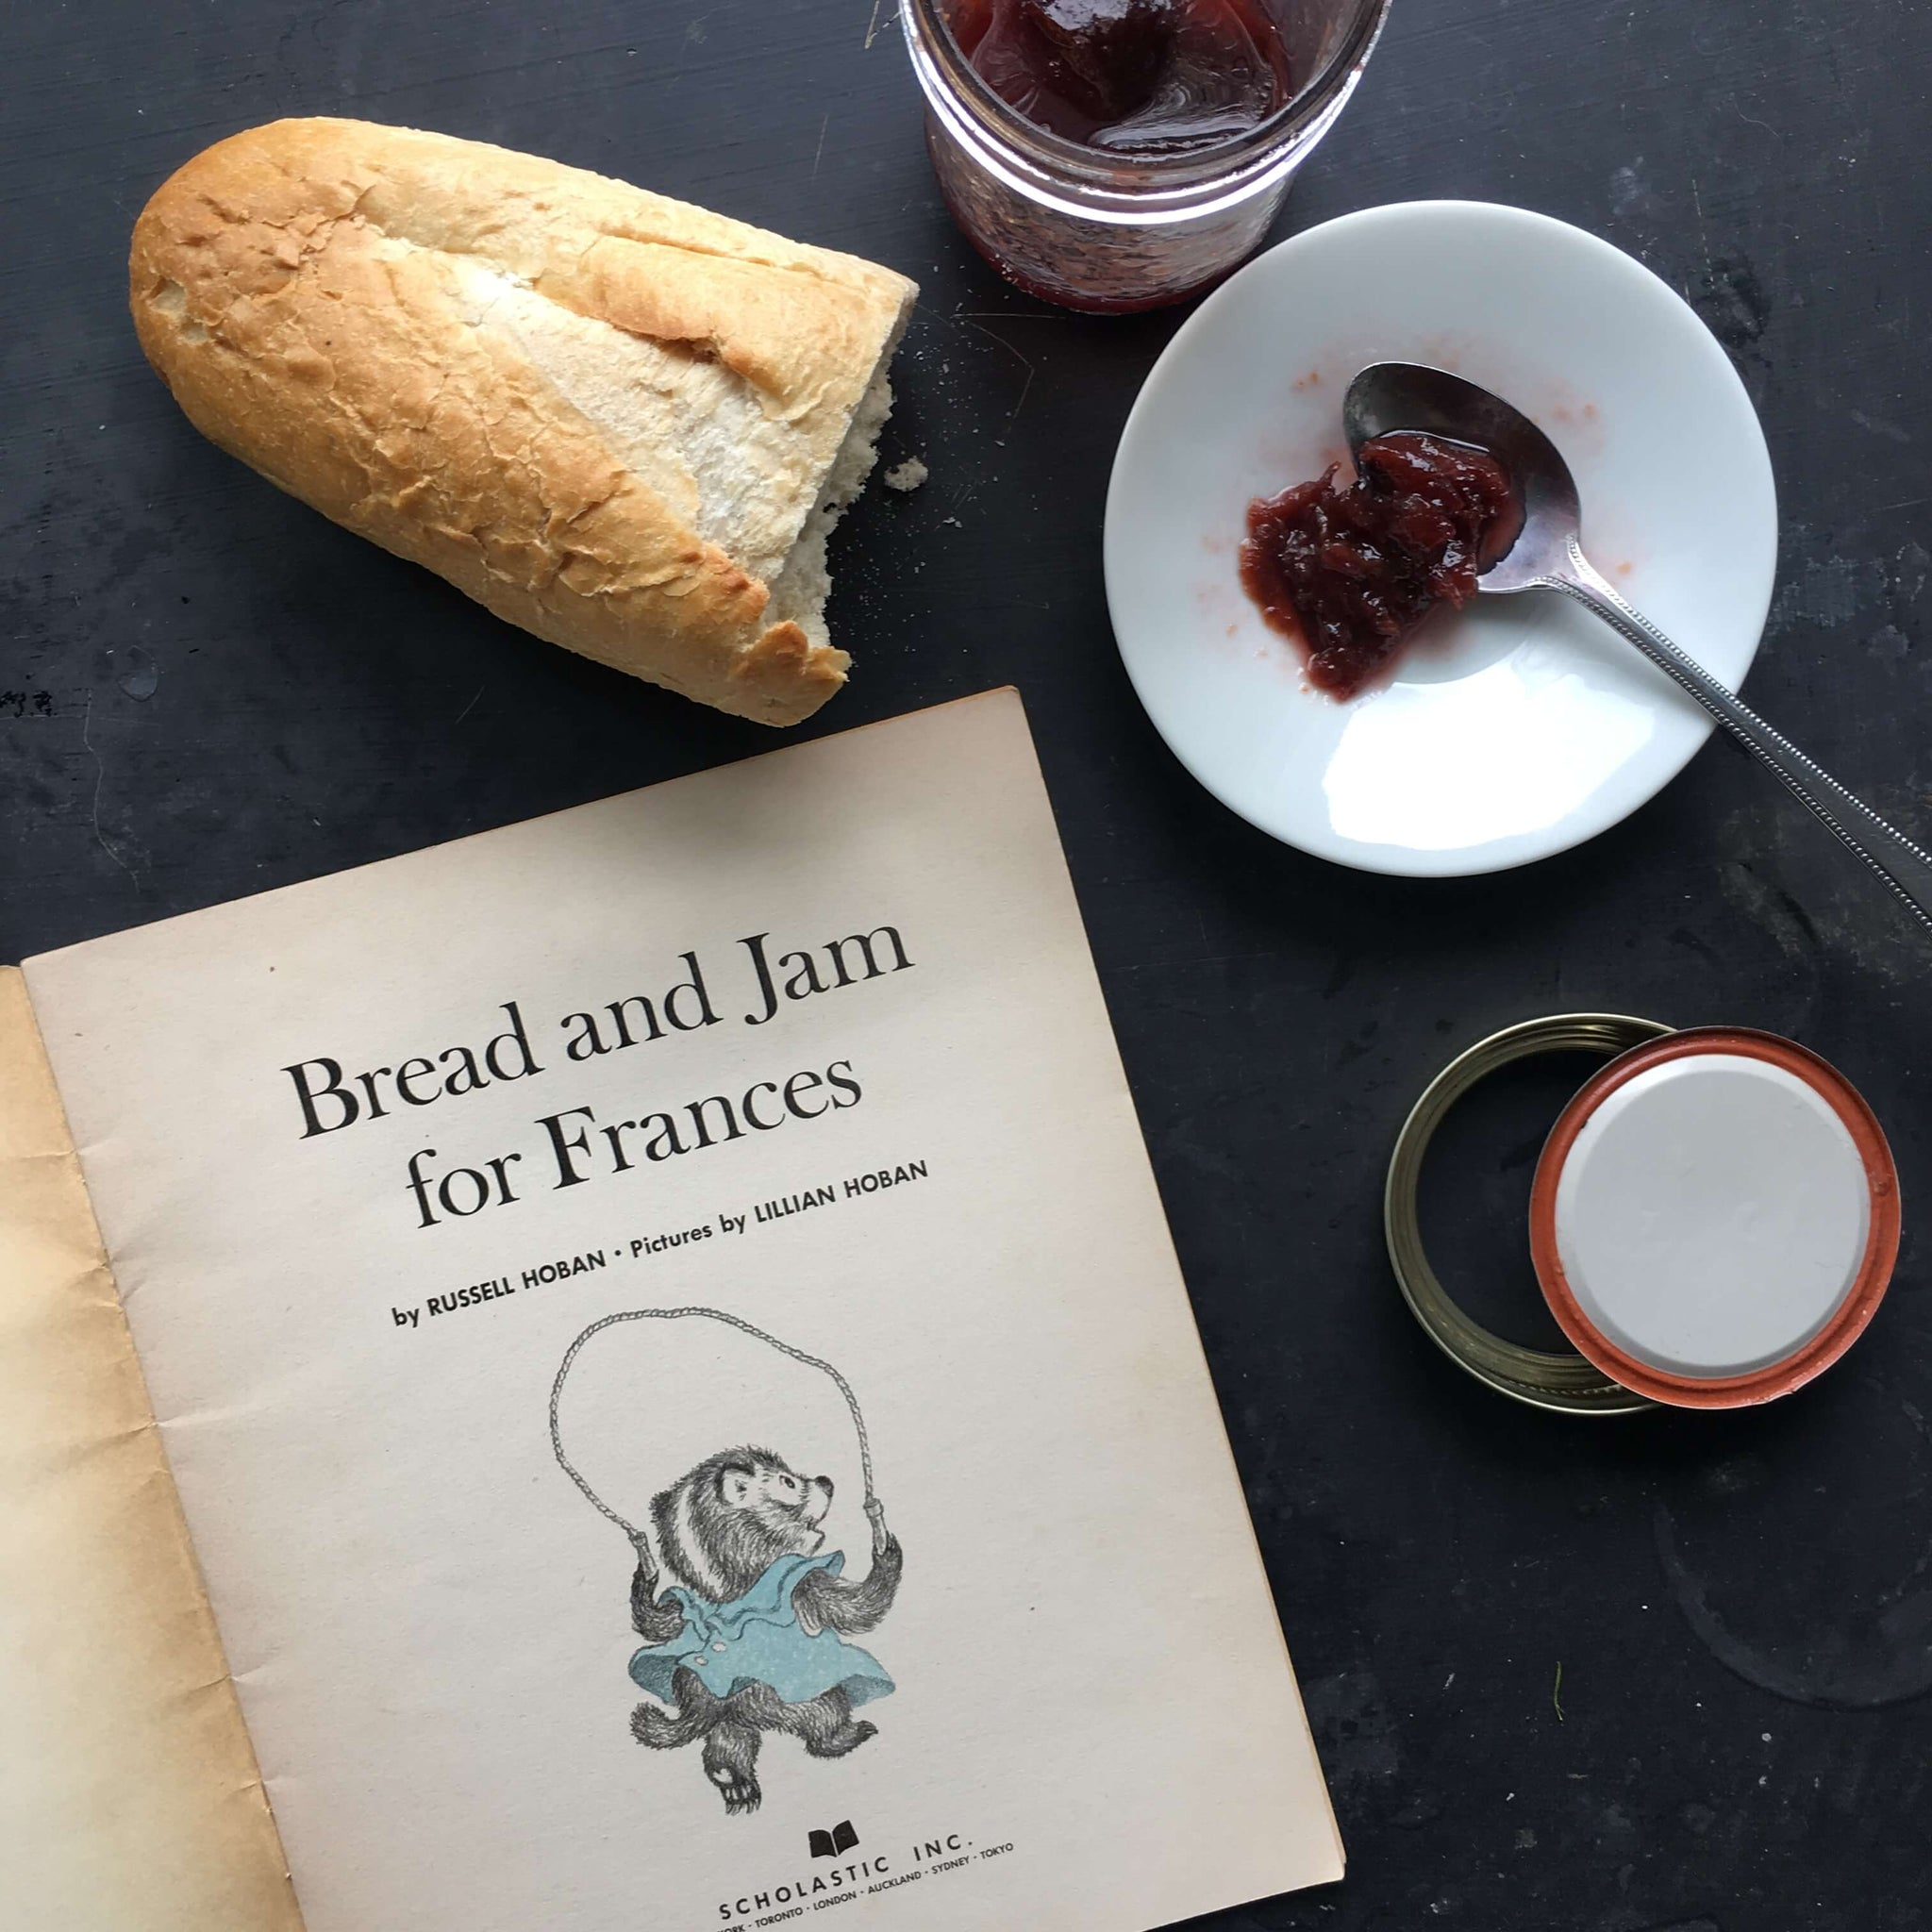 Bread and Jam for Frances - Russell Hoban & Lililan Hoban - 1964 Scholastic Paperback Edition